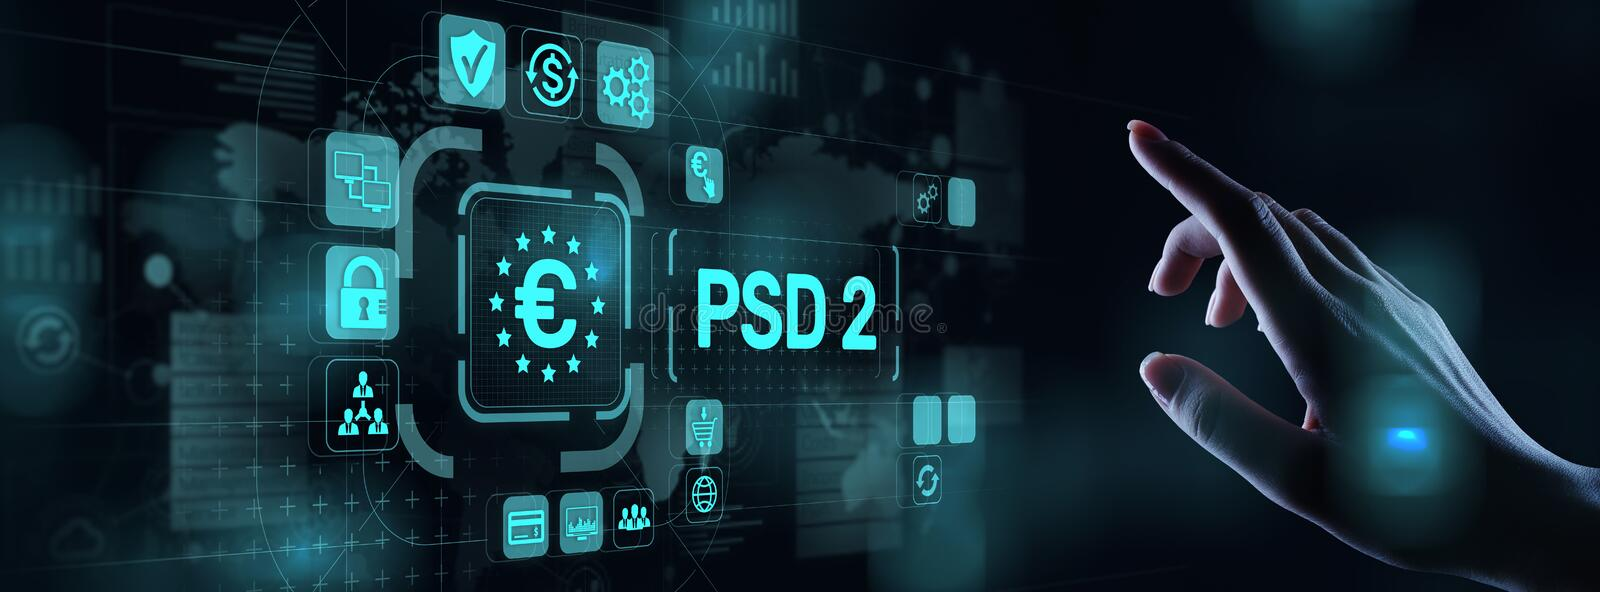 PSD2 Payment Services Directive Open Banking Payment service provider security protocol. PSD2 Payment Services Directive Open Banking Payment service provider vector illustration